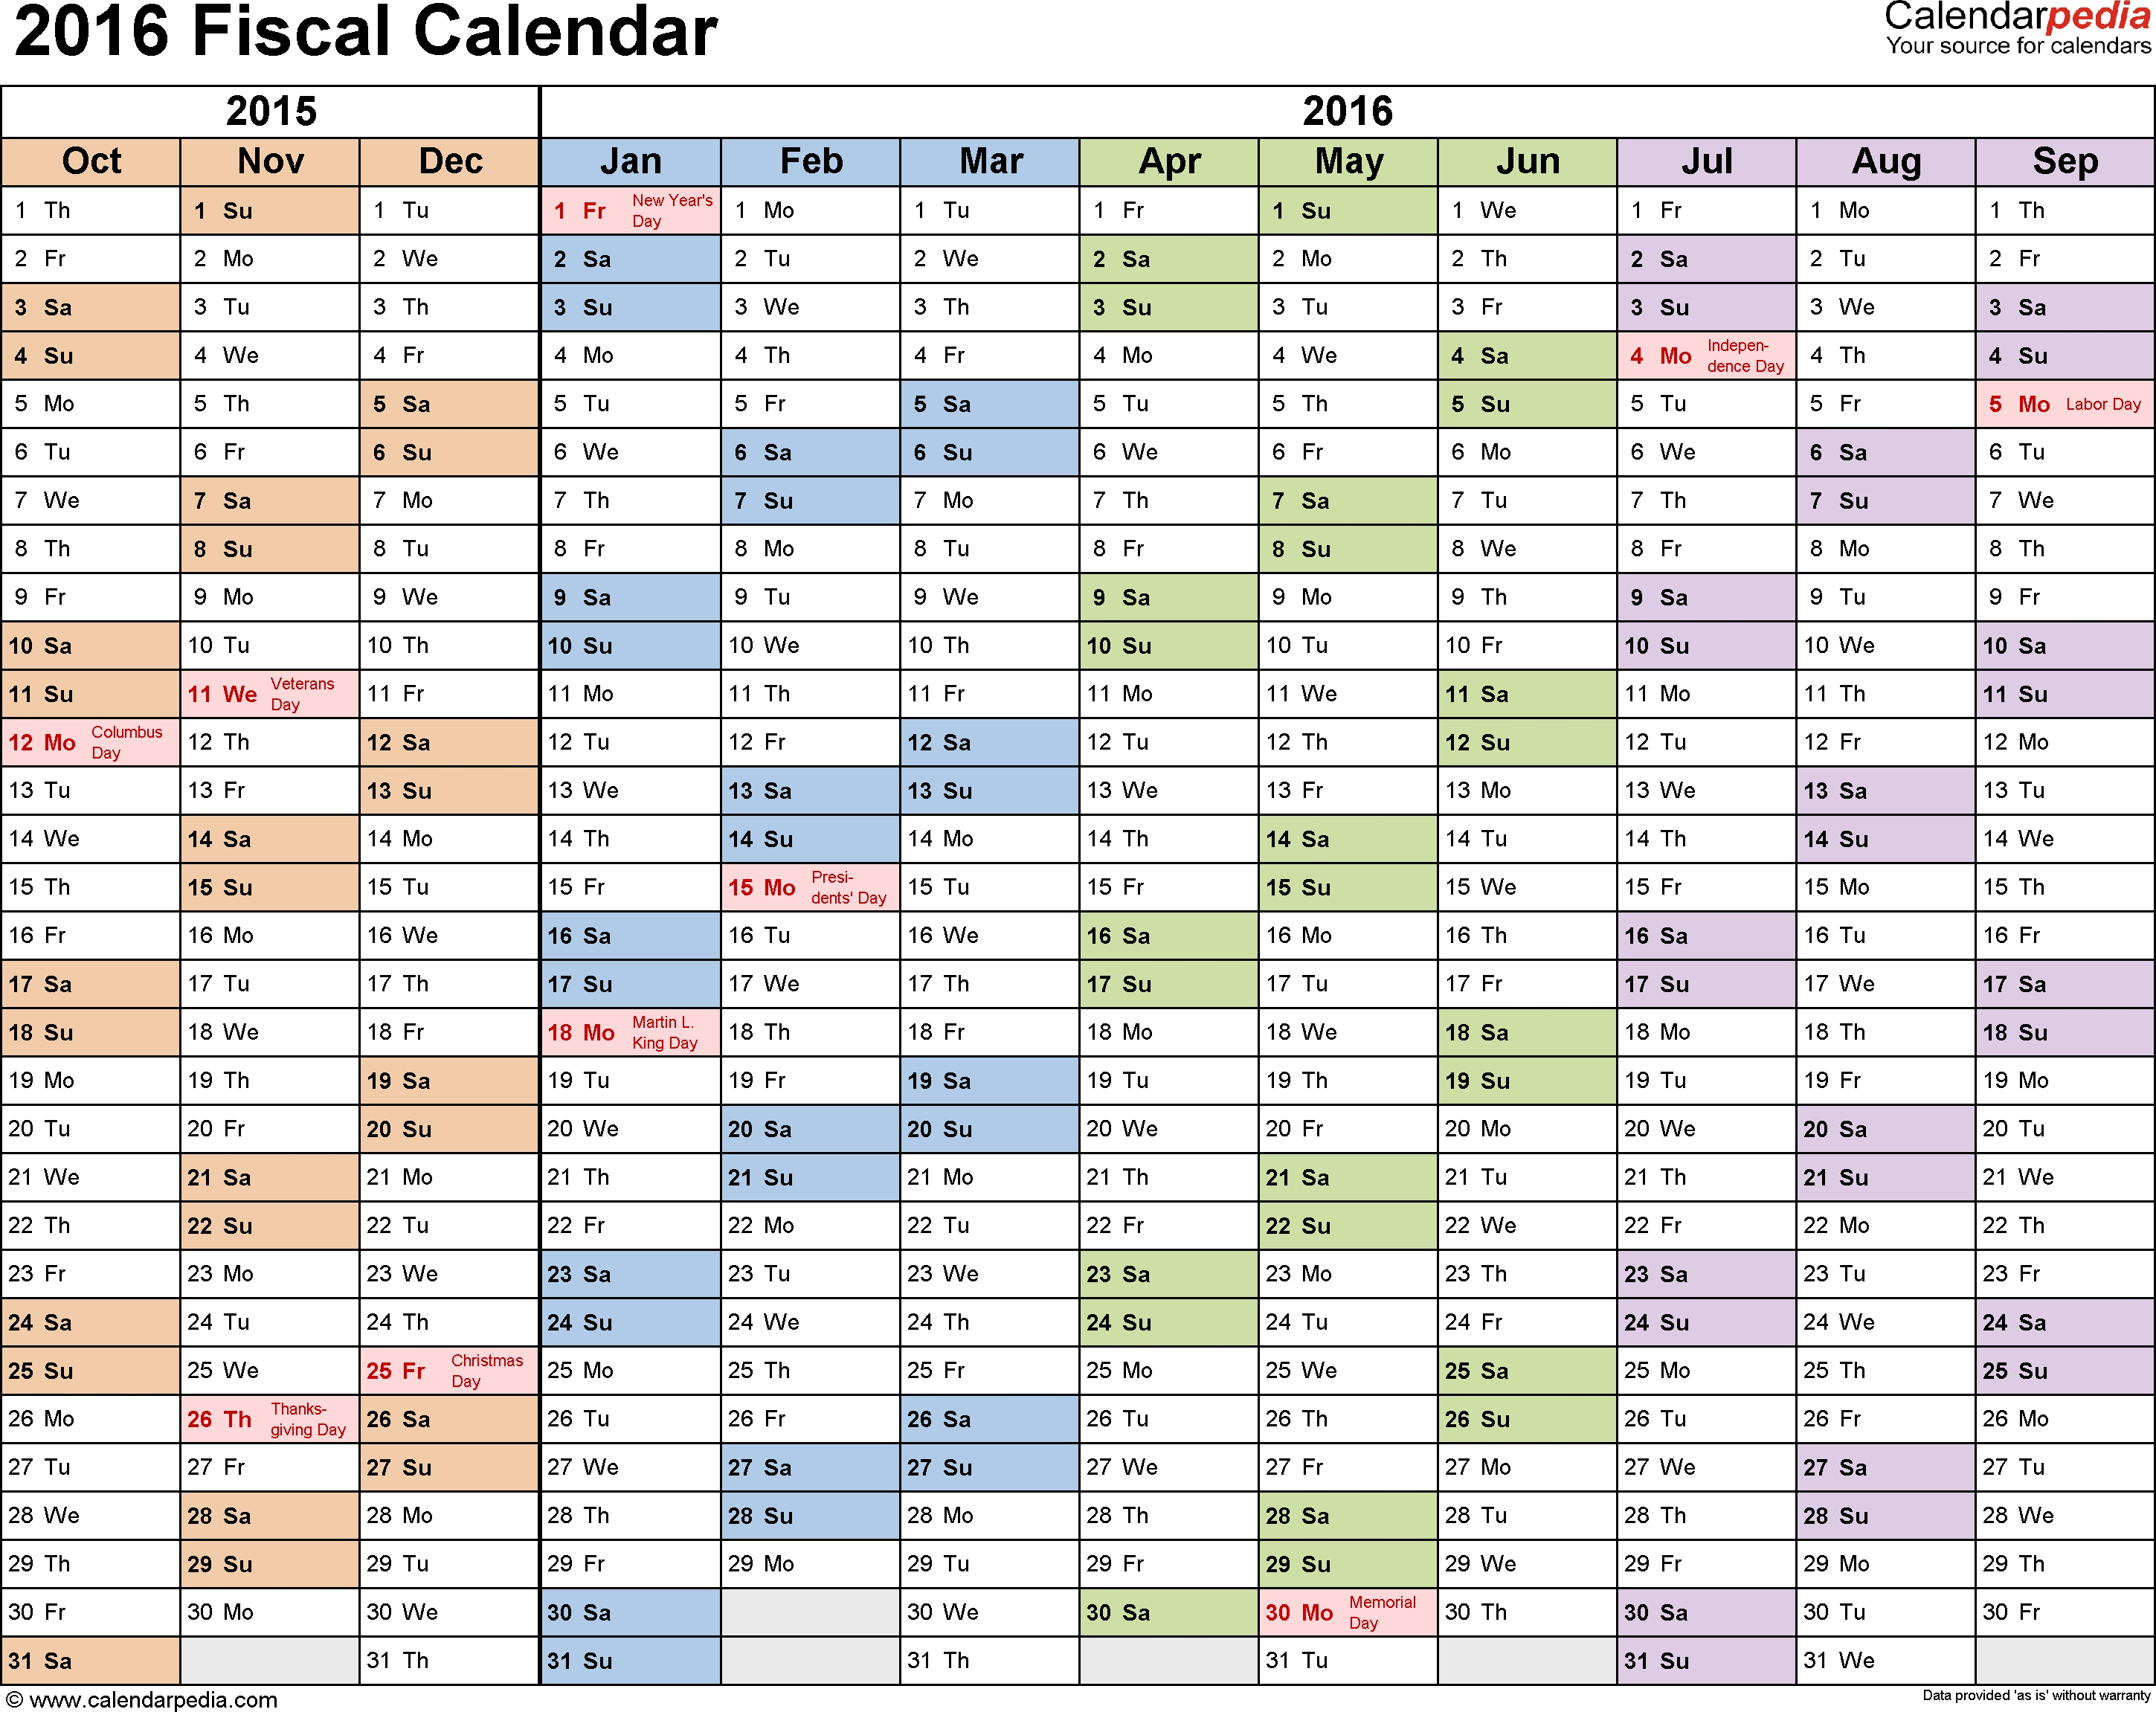 Fiscal Calendars 2016 - Free Printable Excel Templates